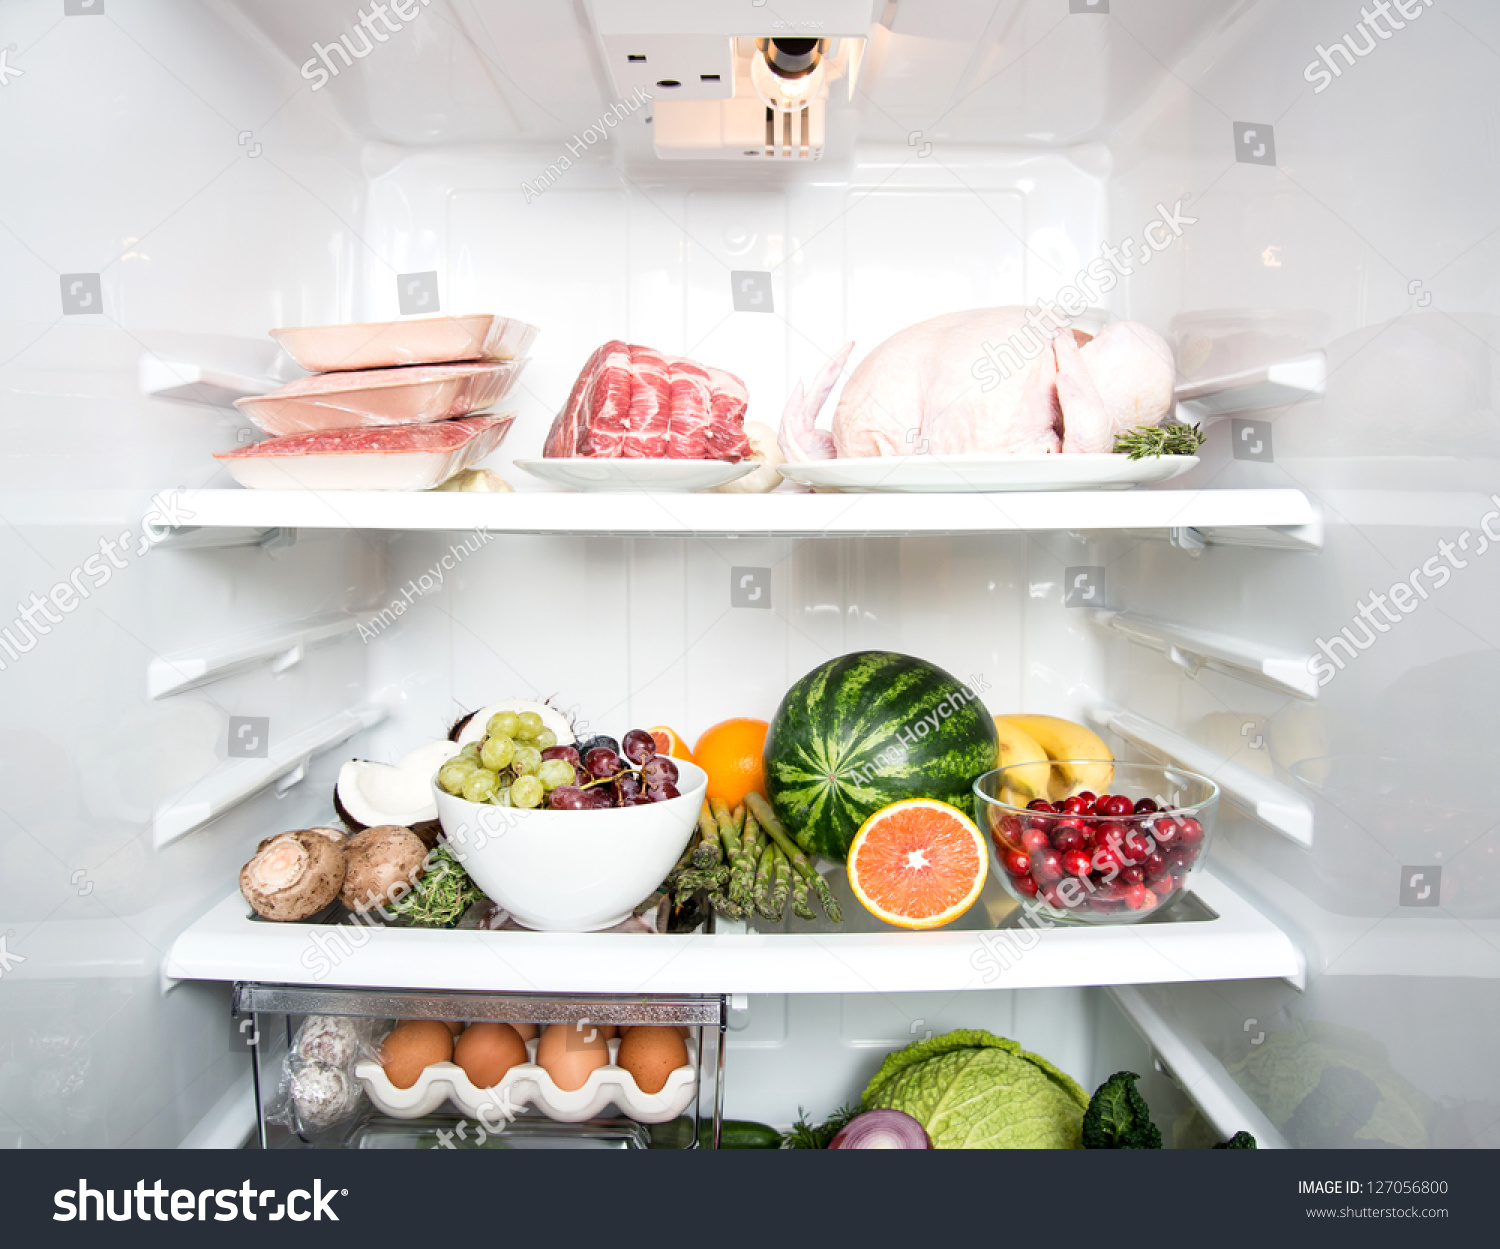 Refrigerator Options Refrigerator Full Fresh Fruits Vegetables Healthy Stock Photo